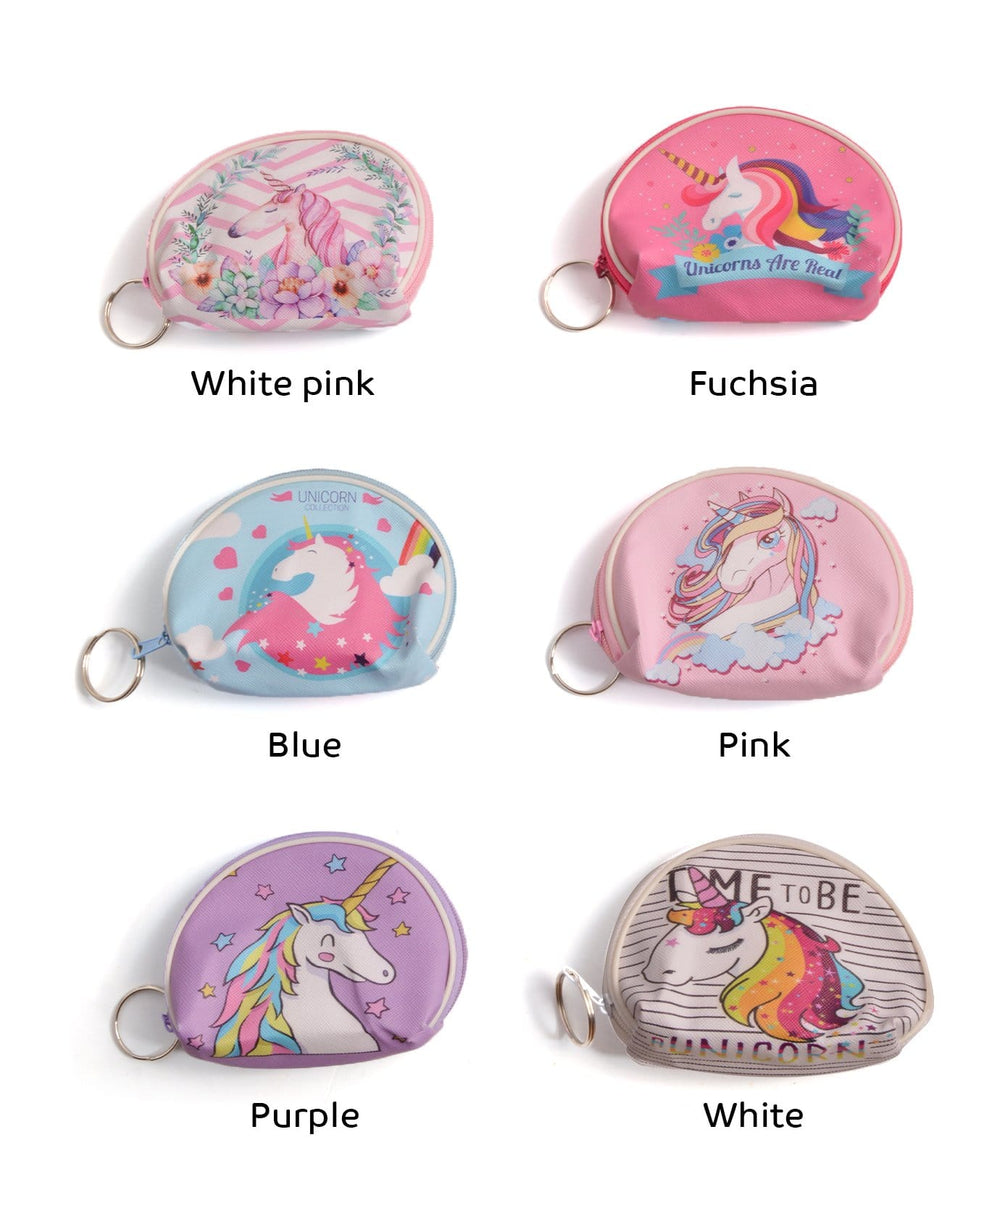 Choosing Unicorns Mini Coin Purse